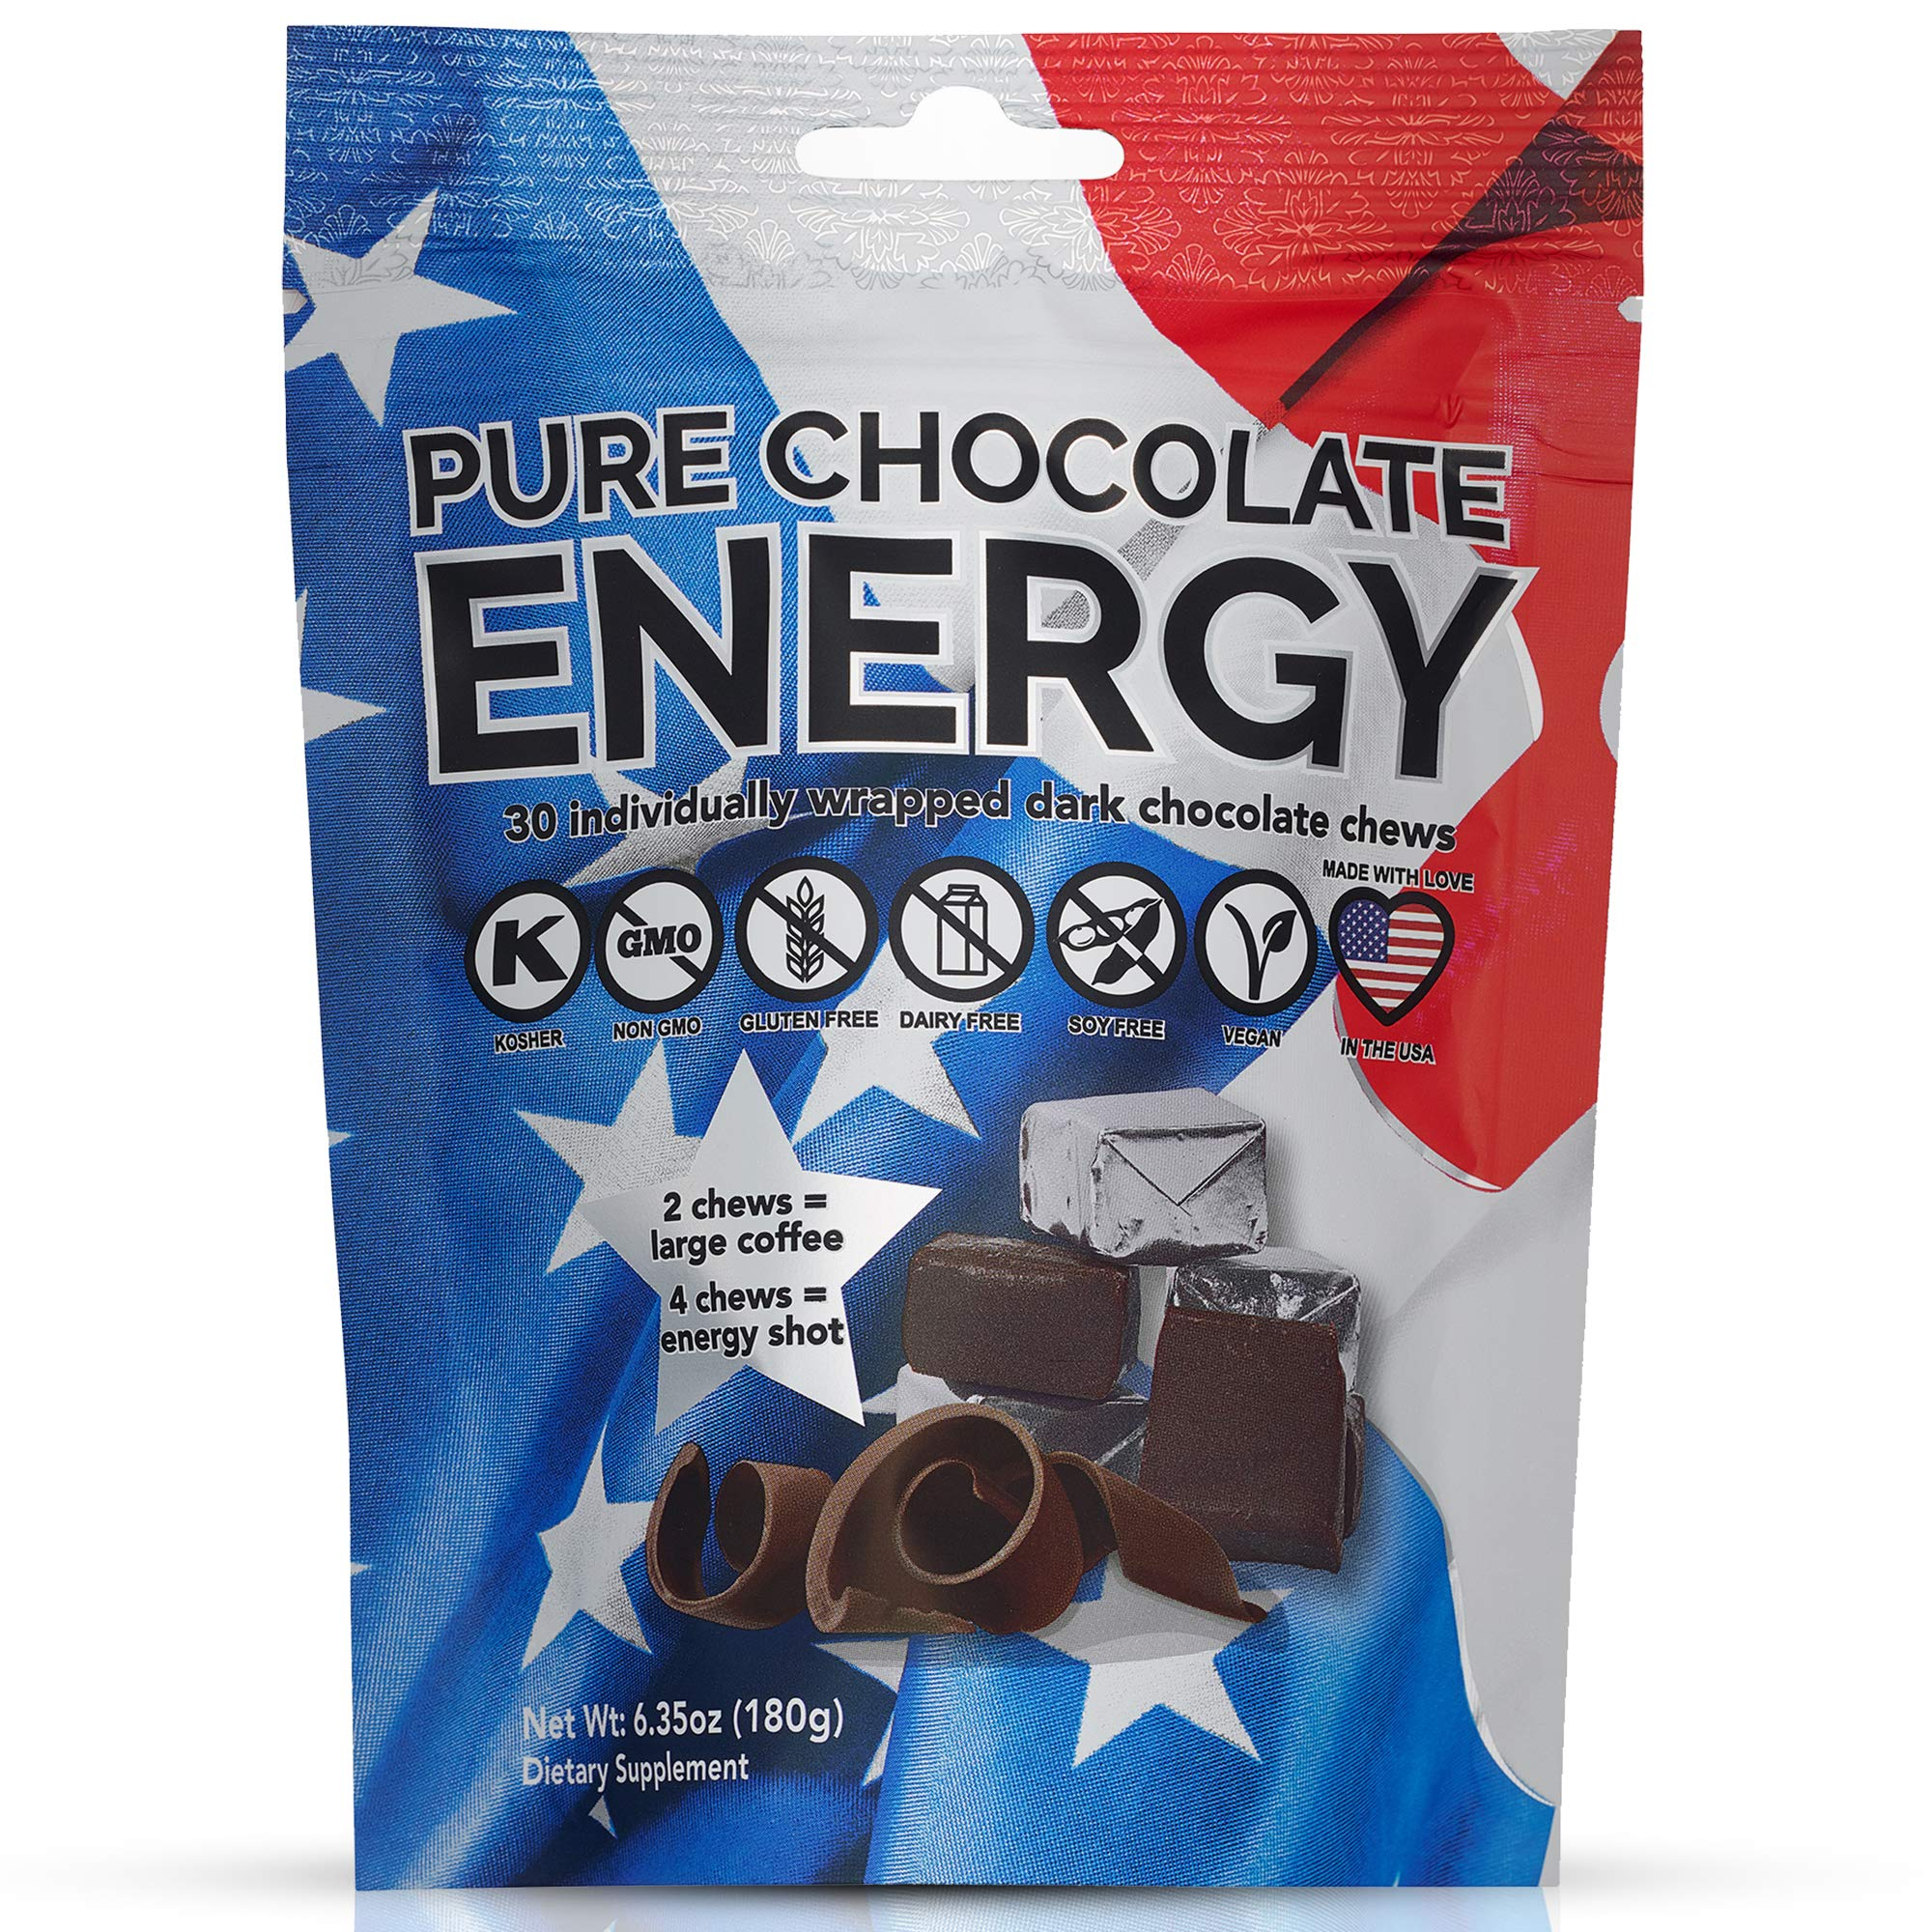 Pure Chocolate Energy Chews - with Caffeine - Dark Chocolate (30 Count) by Purity & Grace